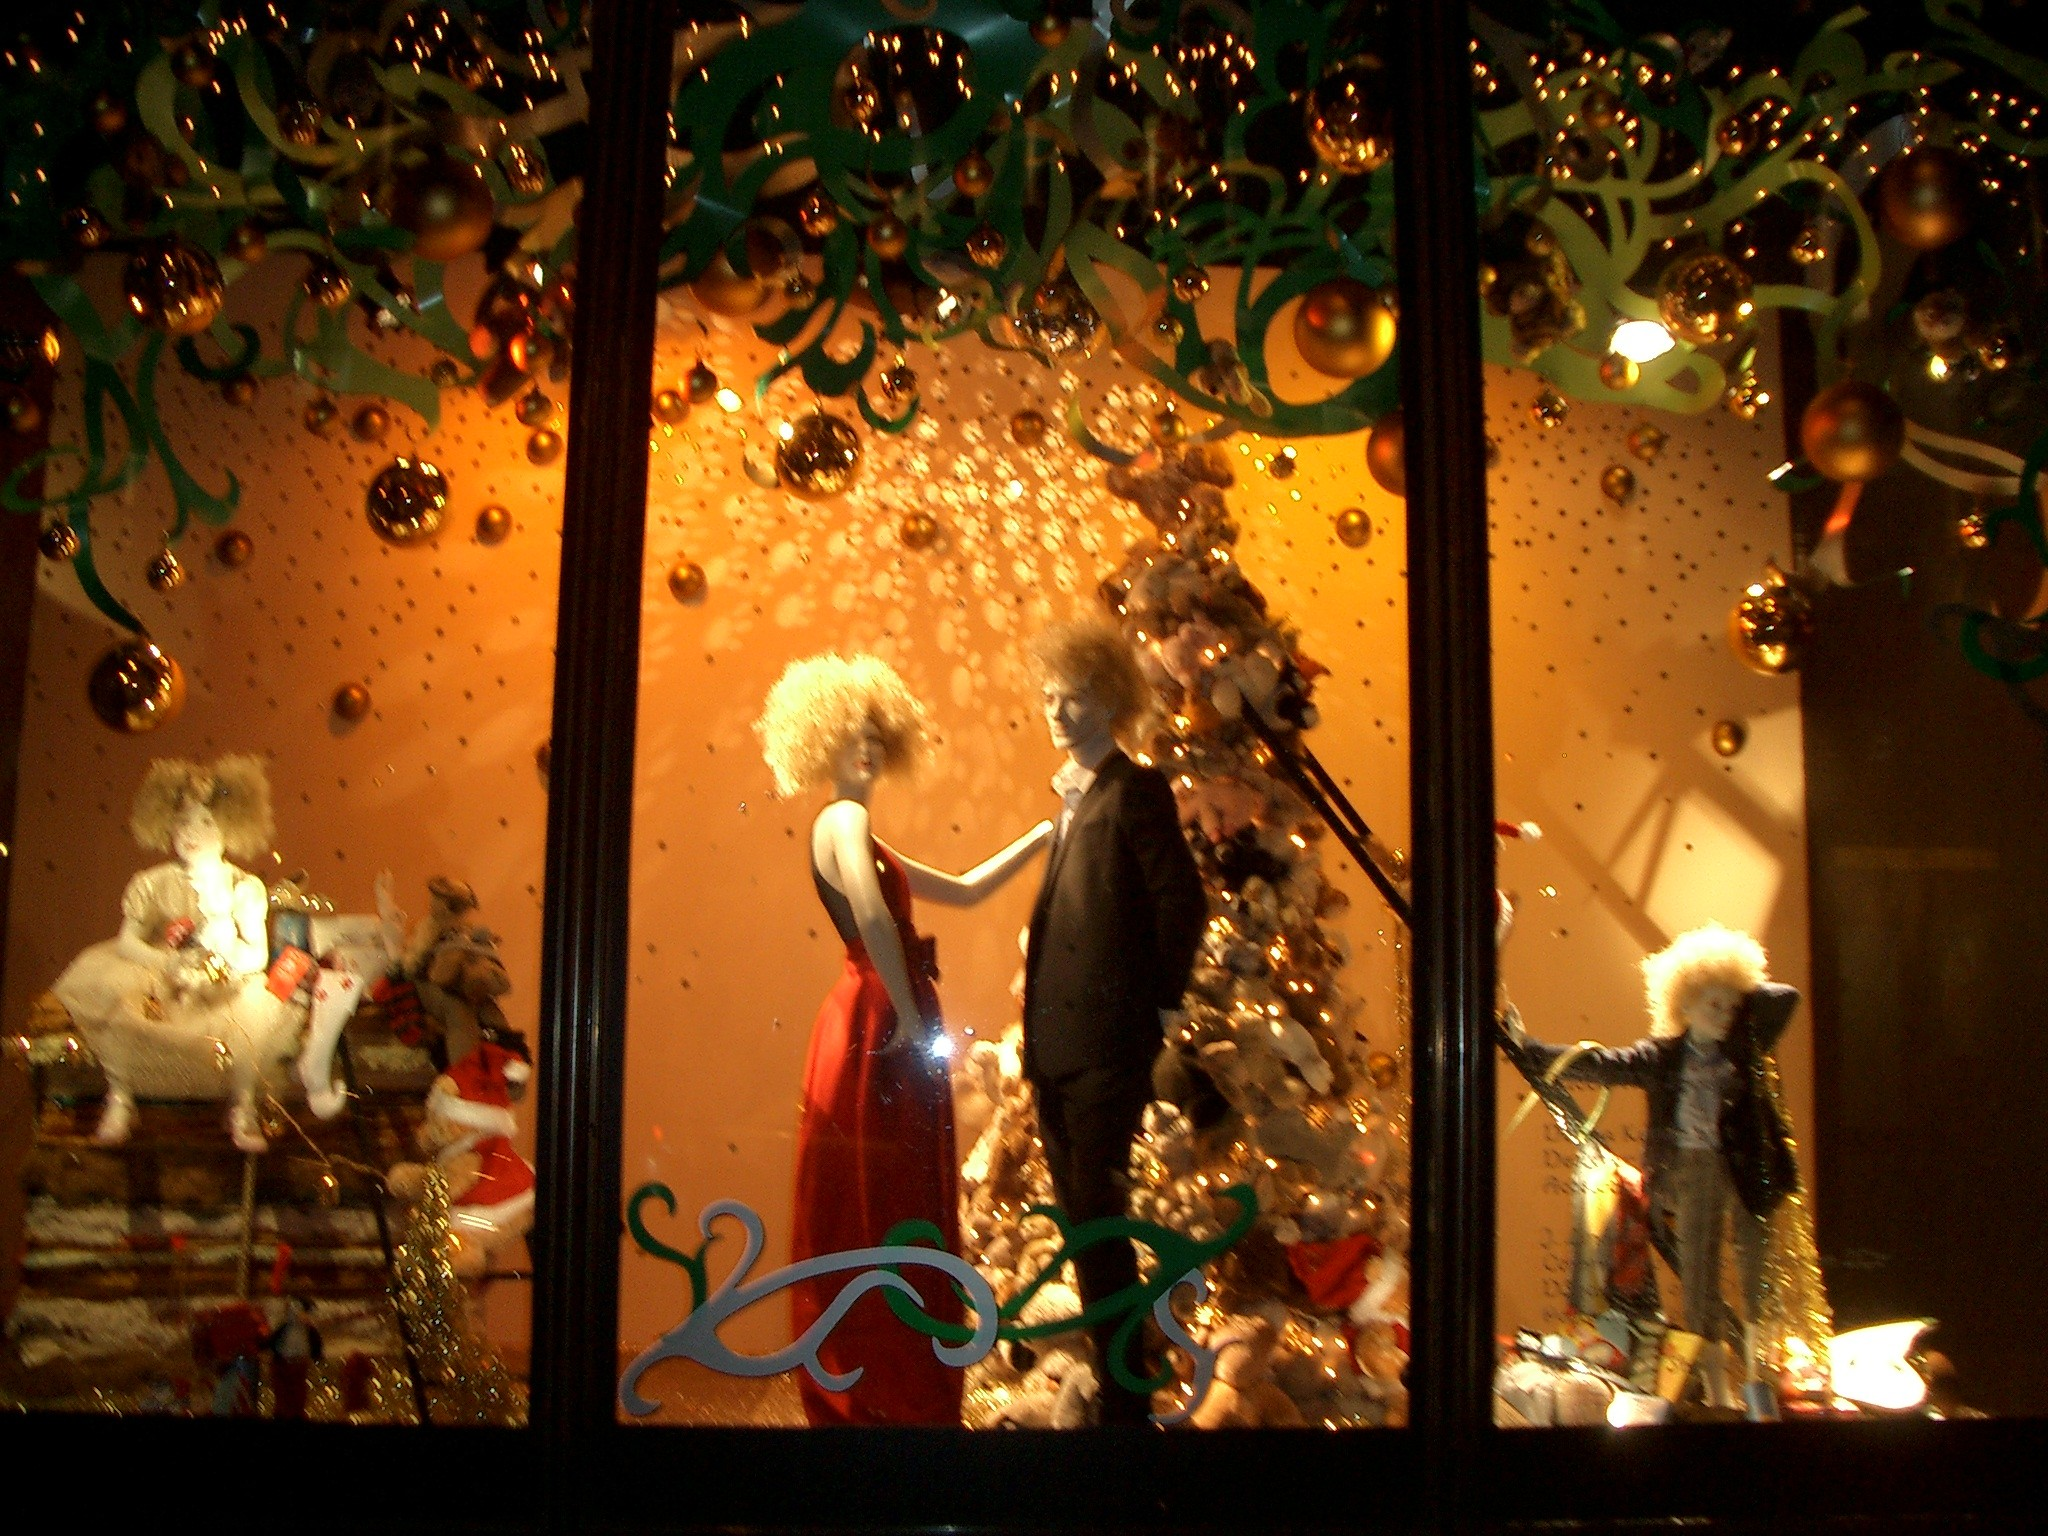 A magic Christmas night near the white fir and under the green tinsels, for two elegant dressed mannequins from this window display.